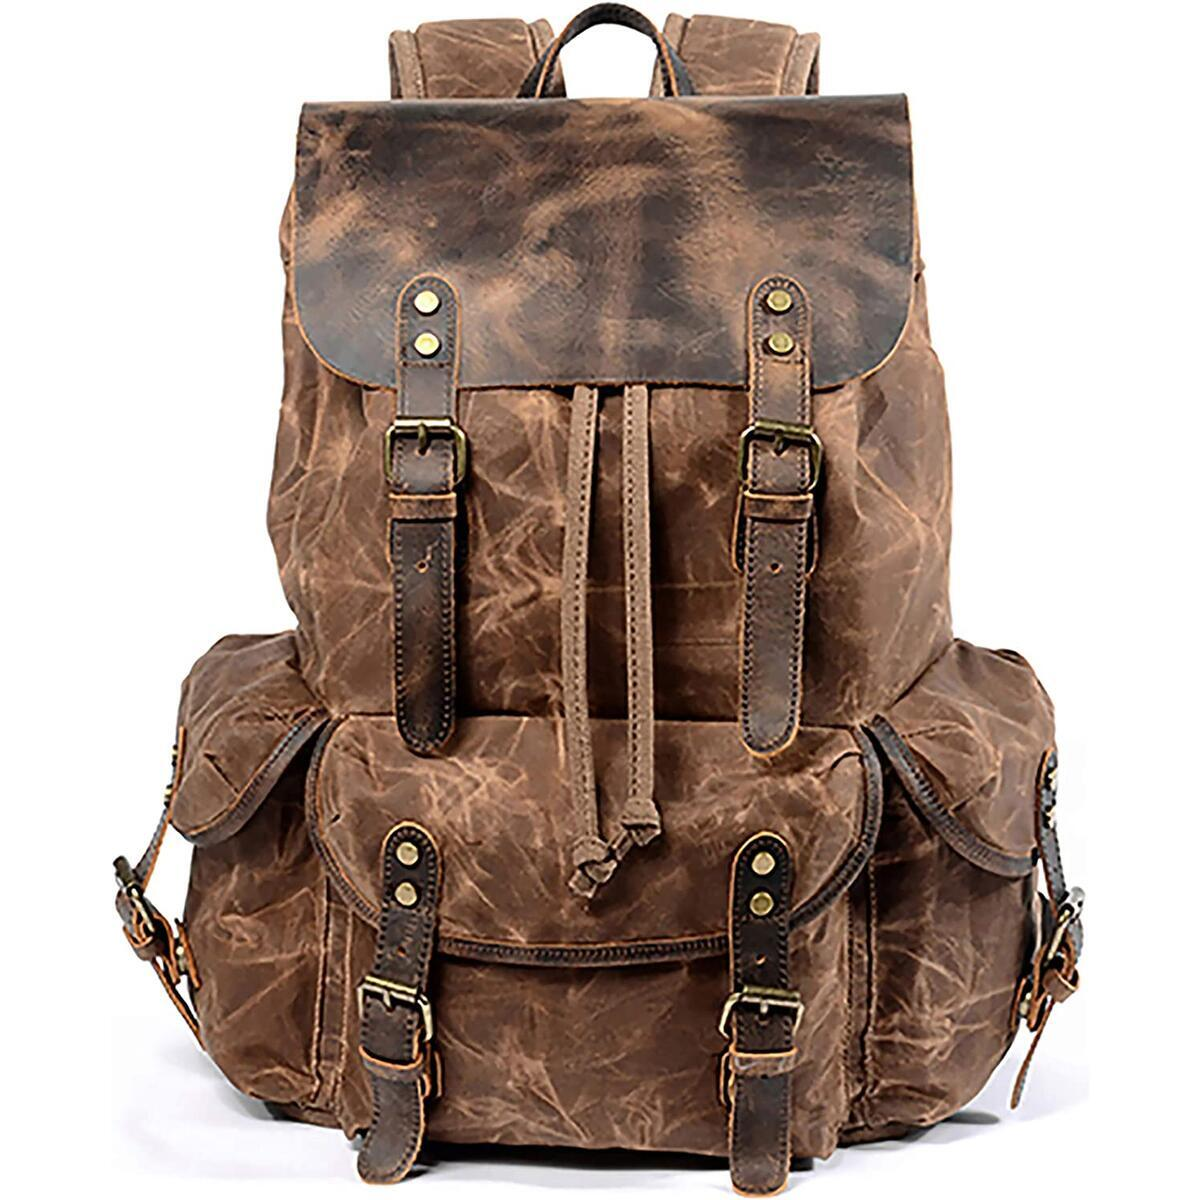 HuaChen Leather Backpack for Men,Waxed Canvas Shoulder Rucksack for Travel Laptop School (M80_Brown)